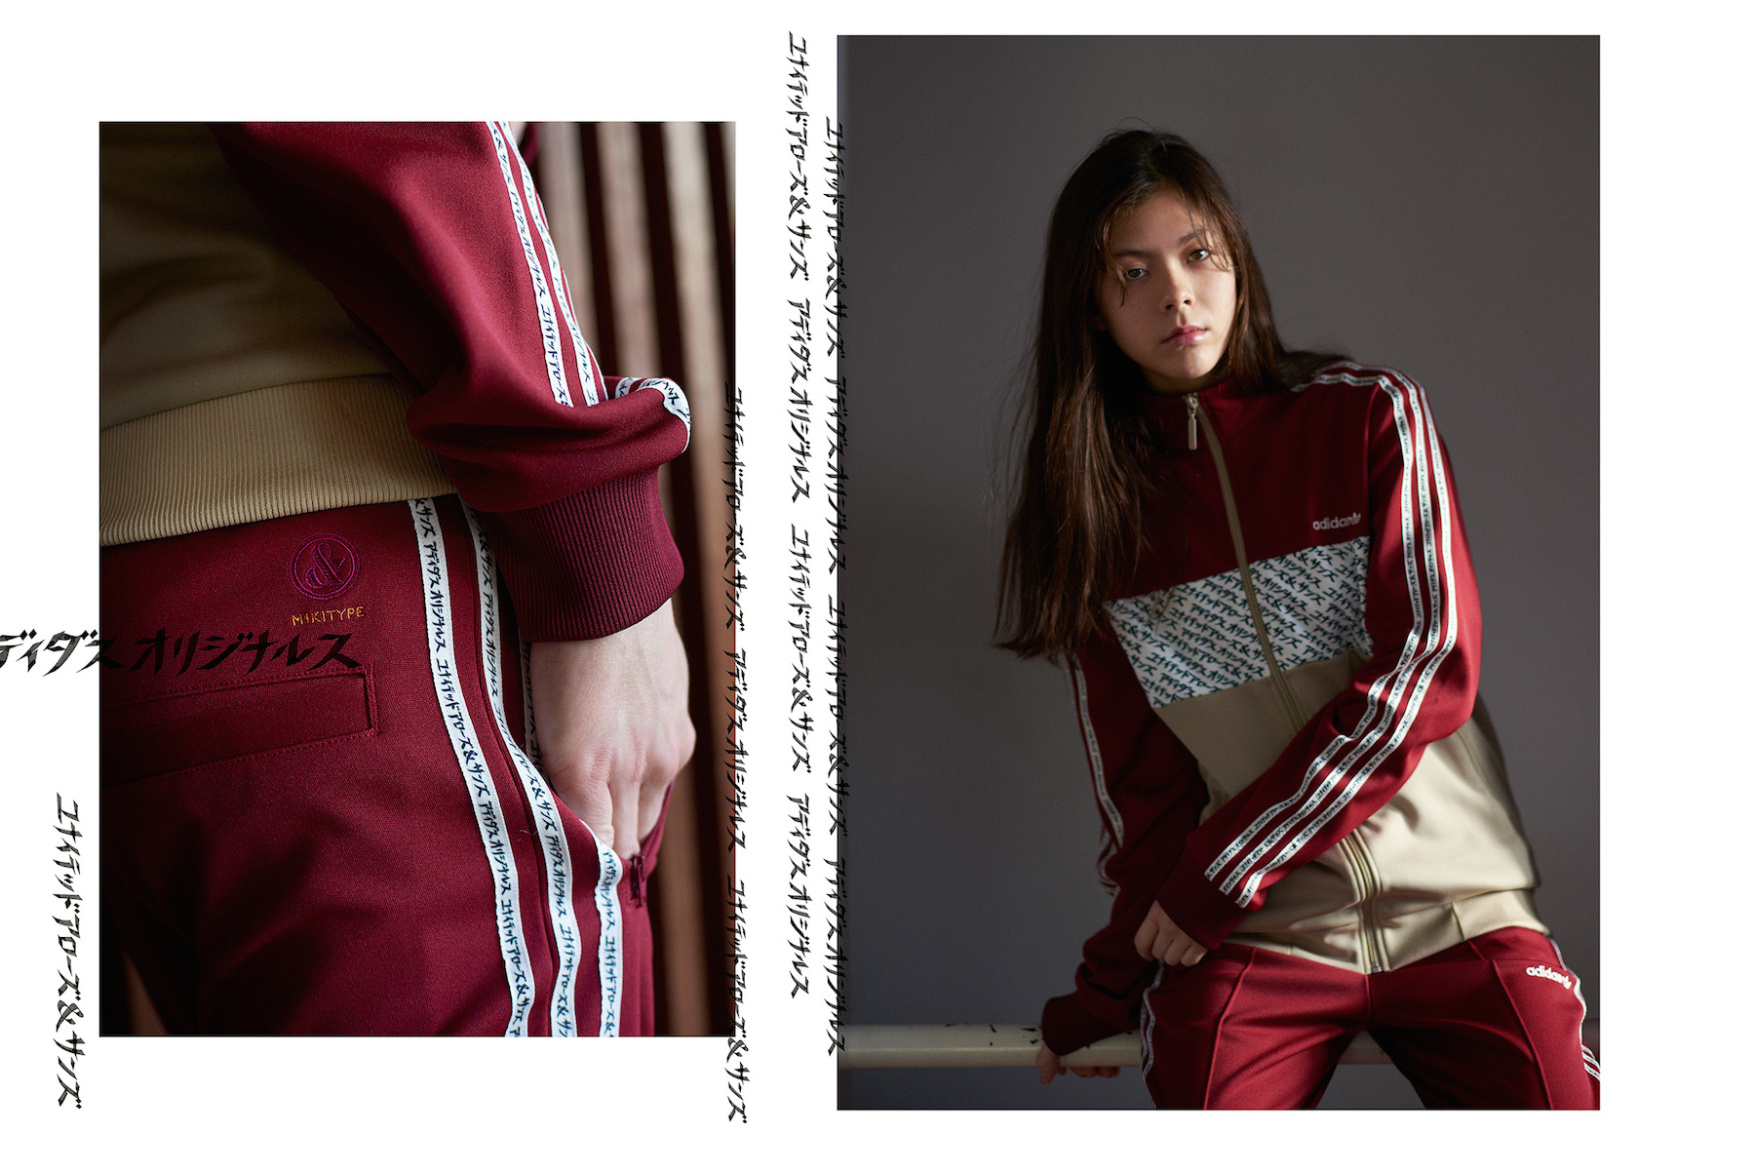 adidas-originals-x-united-arrows-sons-x-mikitype-collection-02